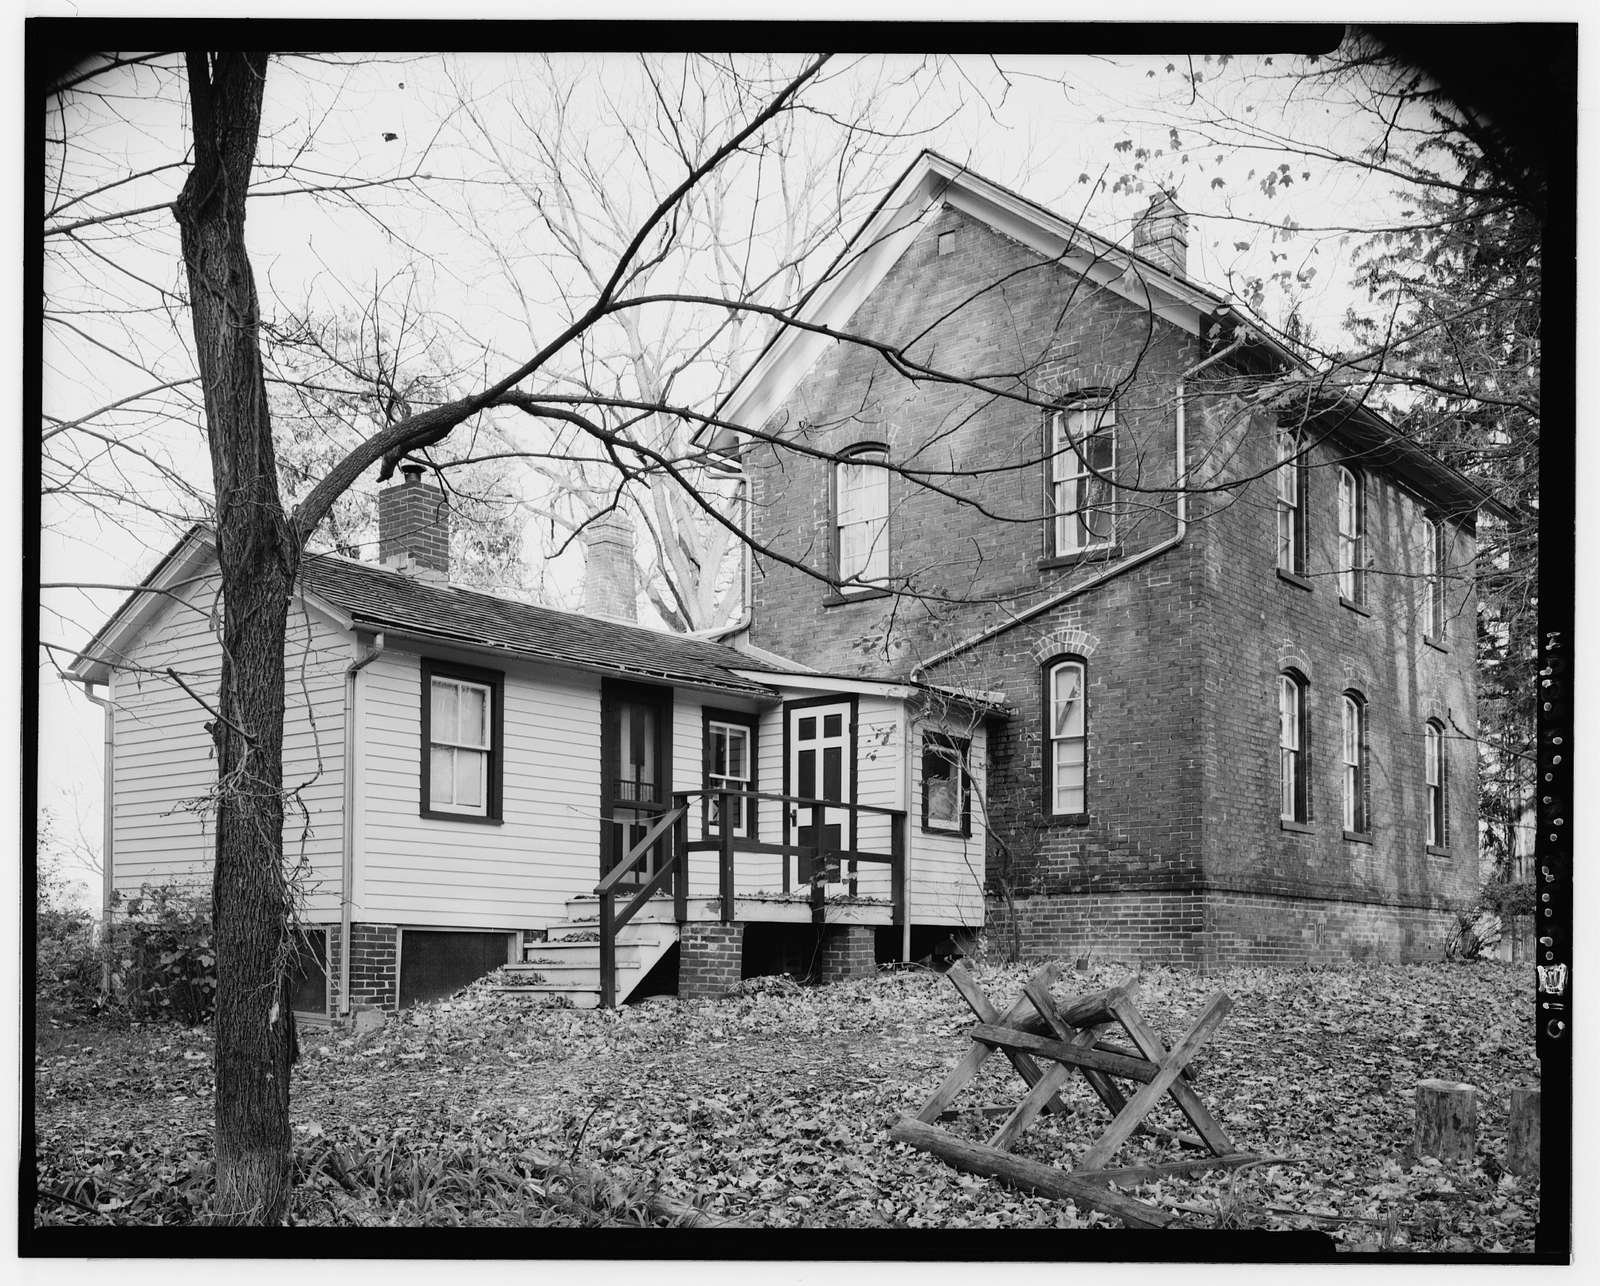 Chellberg Farm, House, 900 North Mineral Springs Road, Porter, Porter County, IN